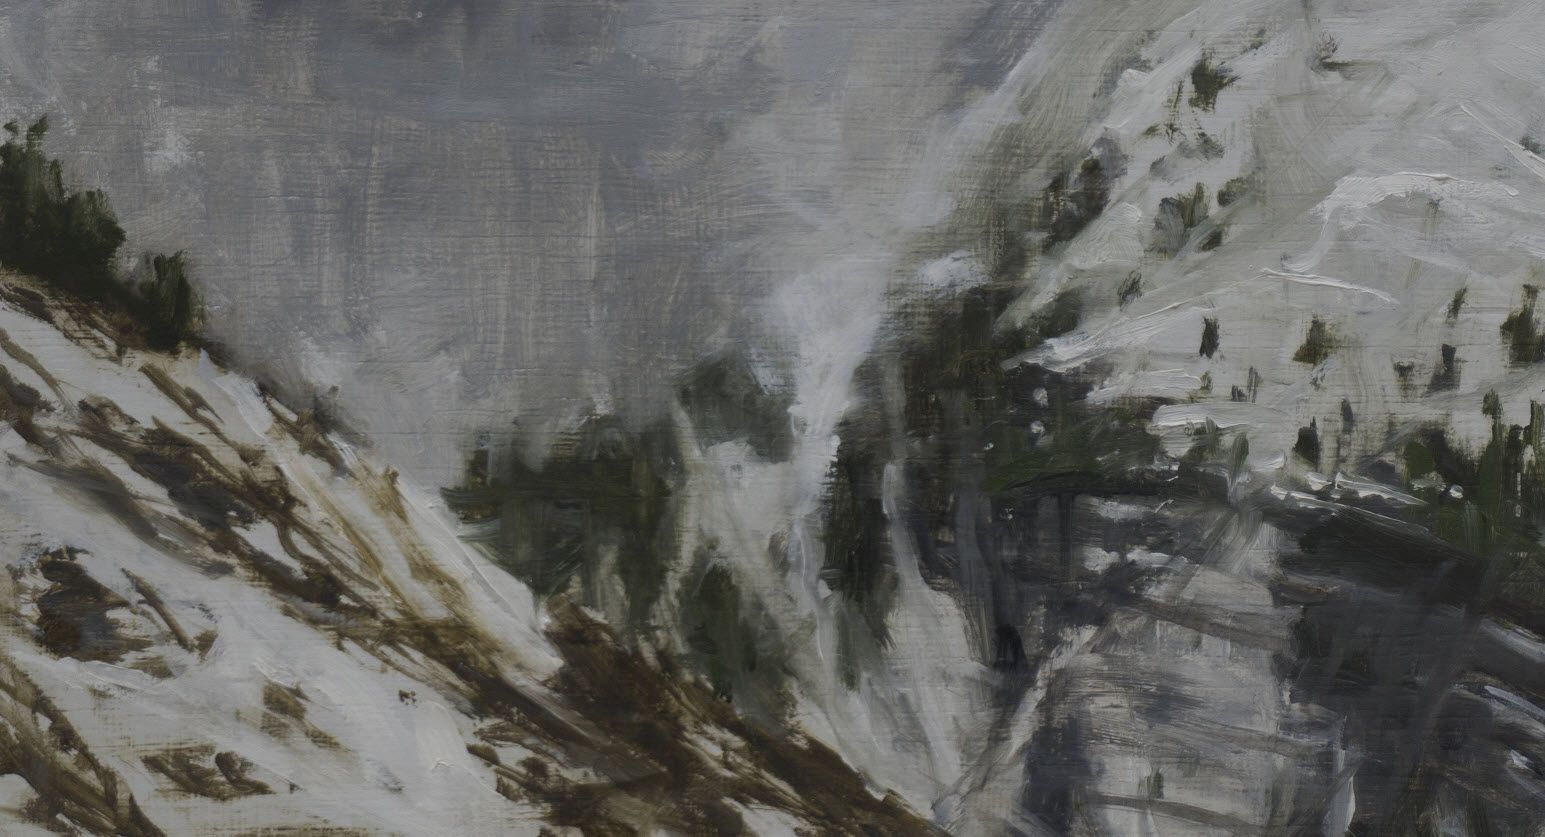 Benasque Study 4, Snow collection,Calo  Carratalá,Painting, detail 1